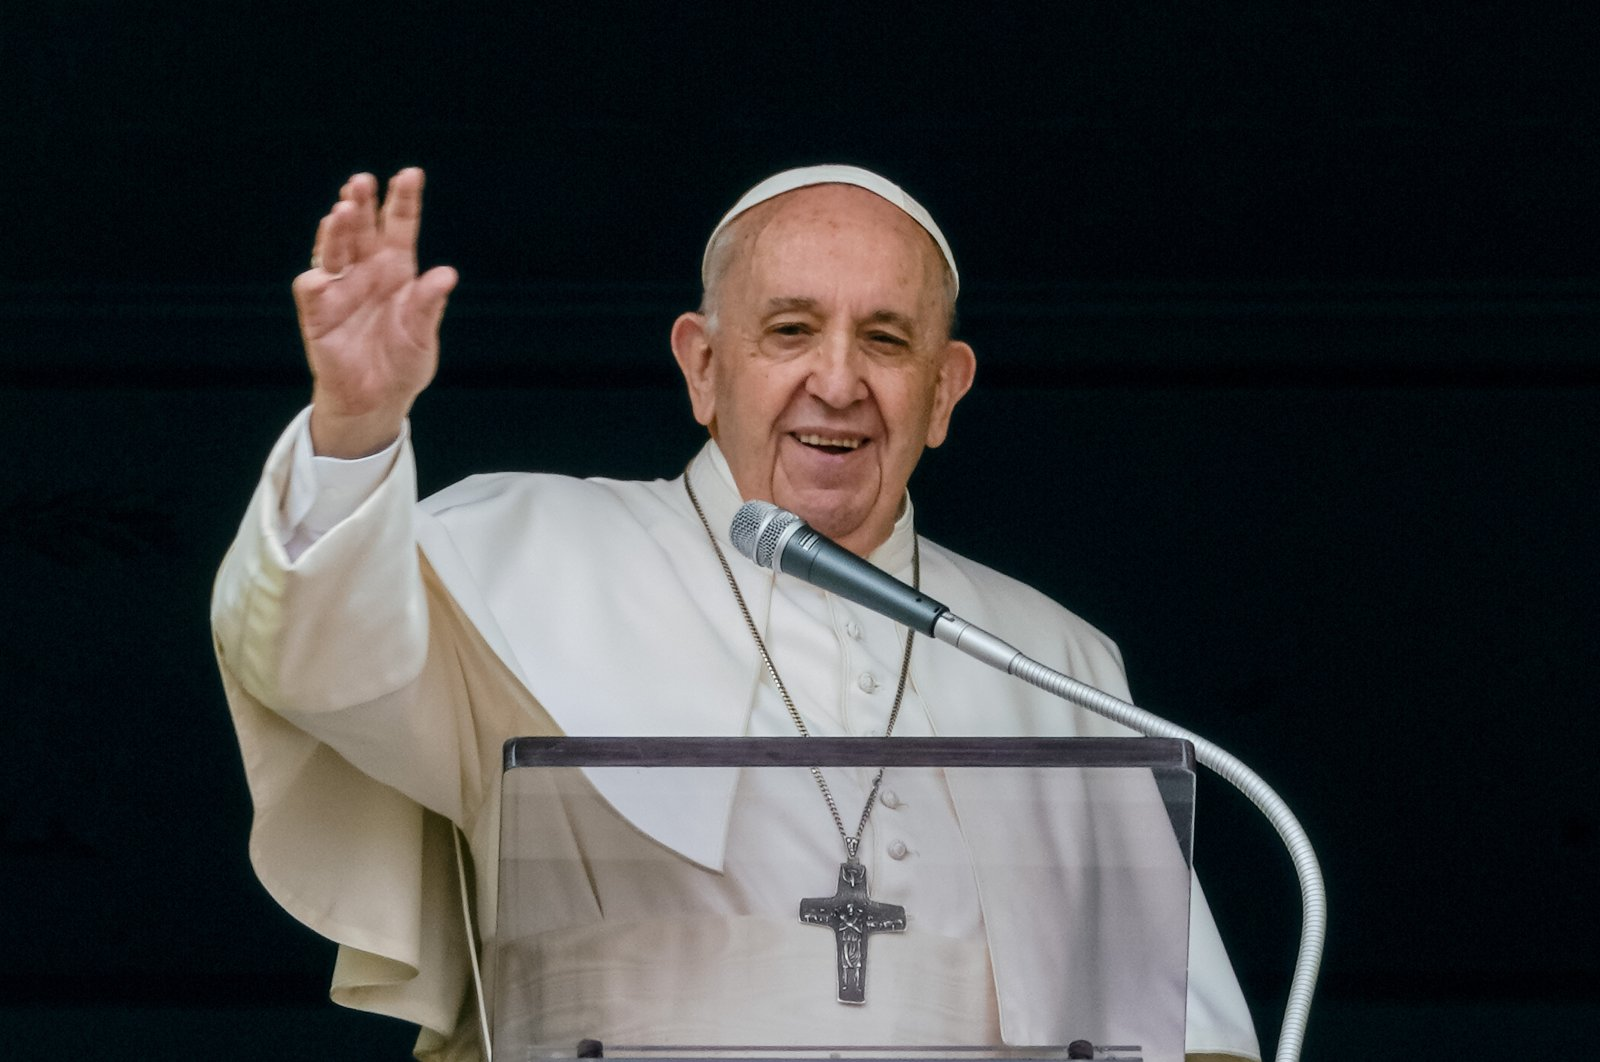 Pope Francis waves from the window of his studio overlooking St. Peter's Square at The Vatican to a crowd of faithful and pilgrims gathered for the Sunday Angelus noon prayer, Rome, Italy, June 6, 2021. (AP Photo)